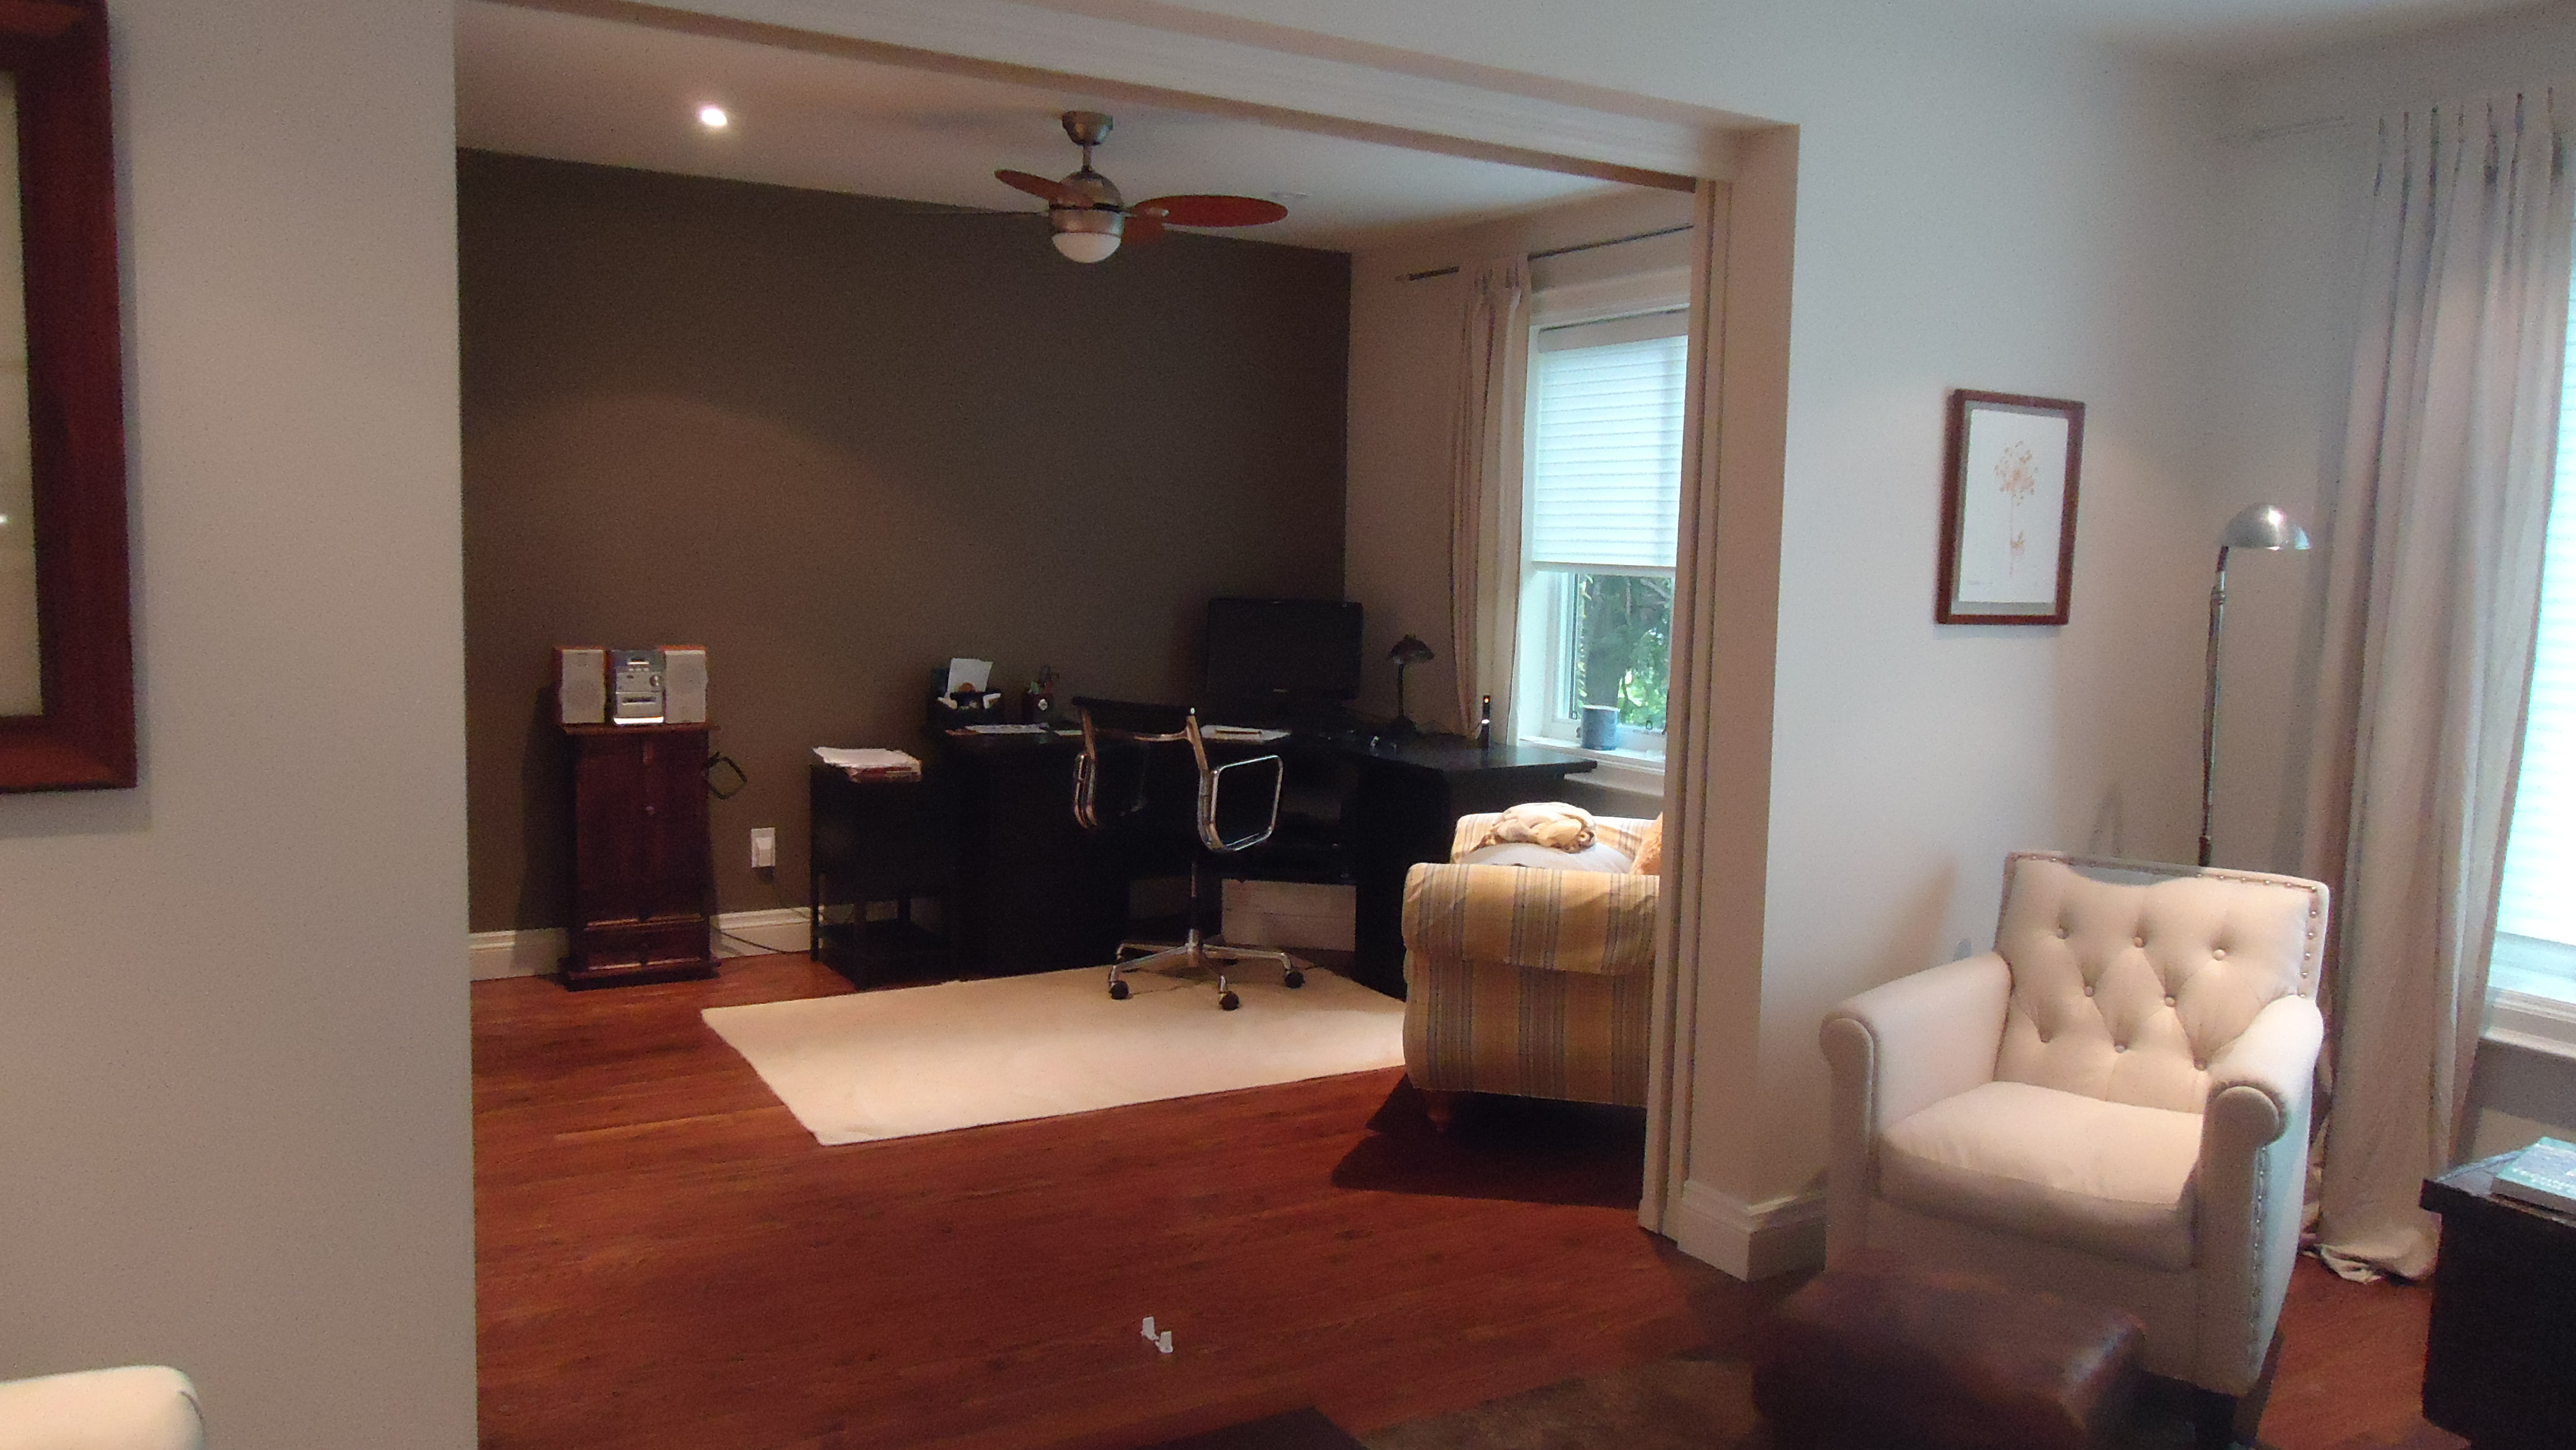 With The Doors Closed, It Gives The Living Room A Cozier Feel And Keeps The Home  Office Private.